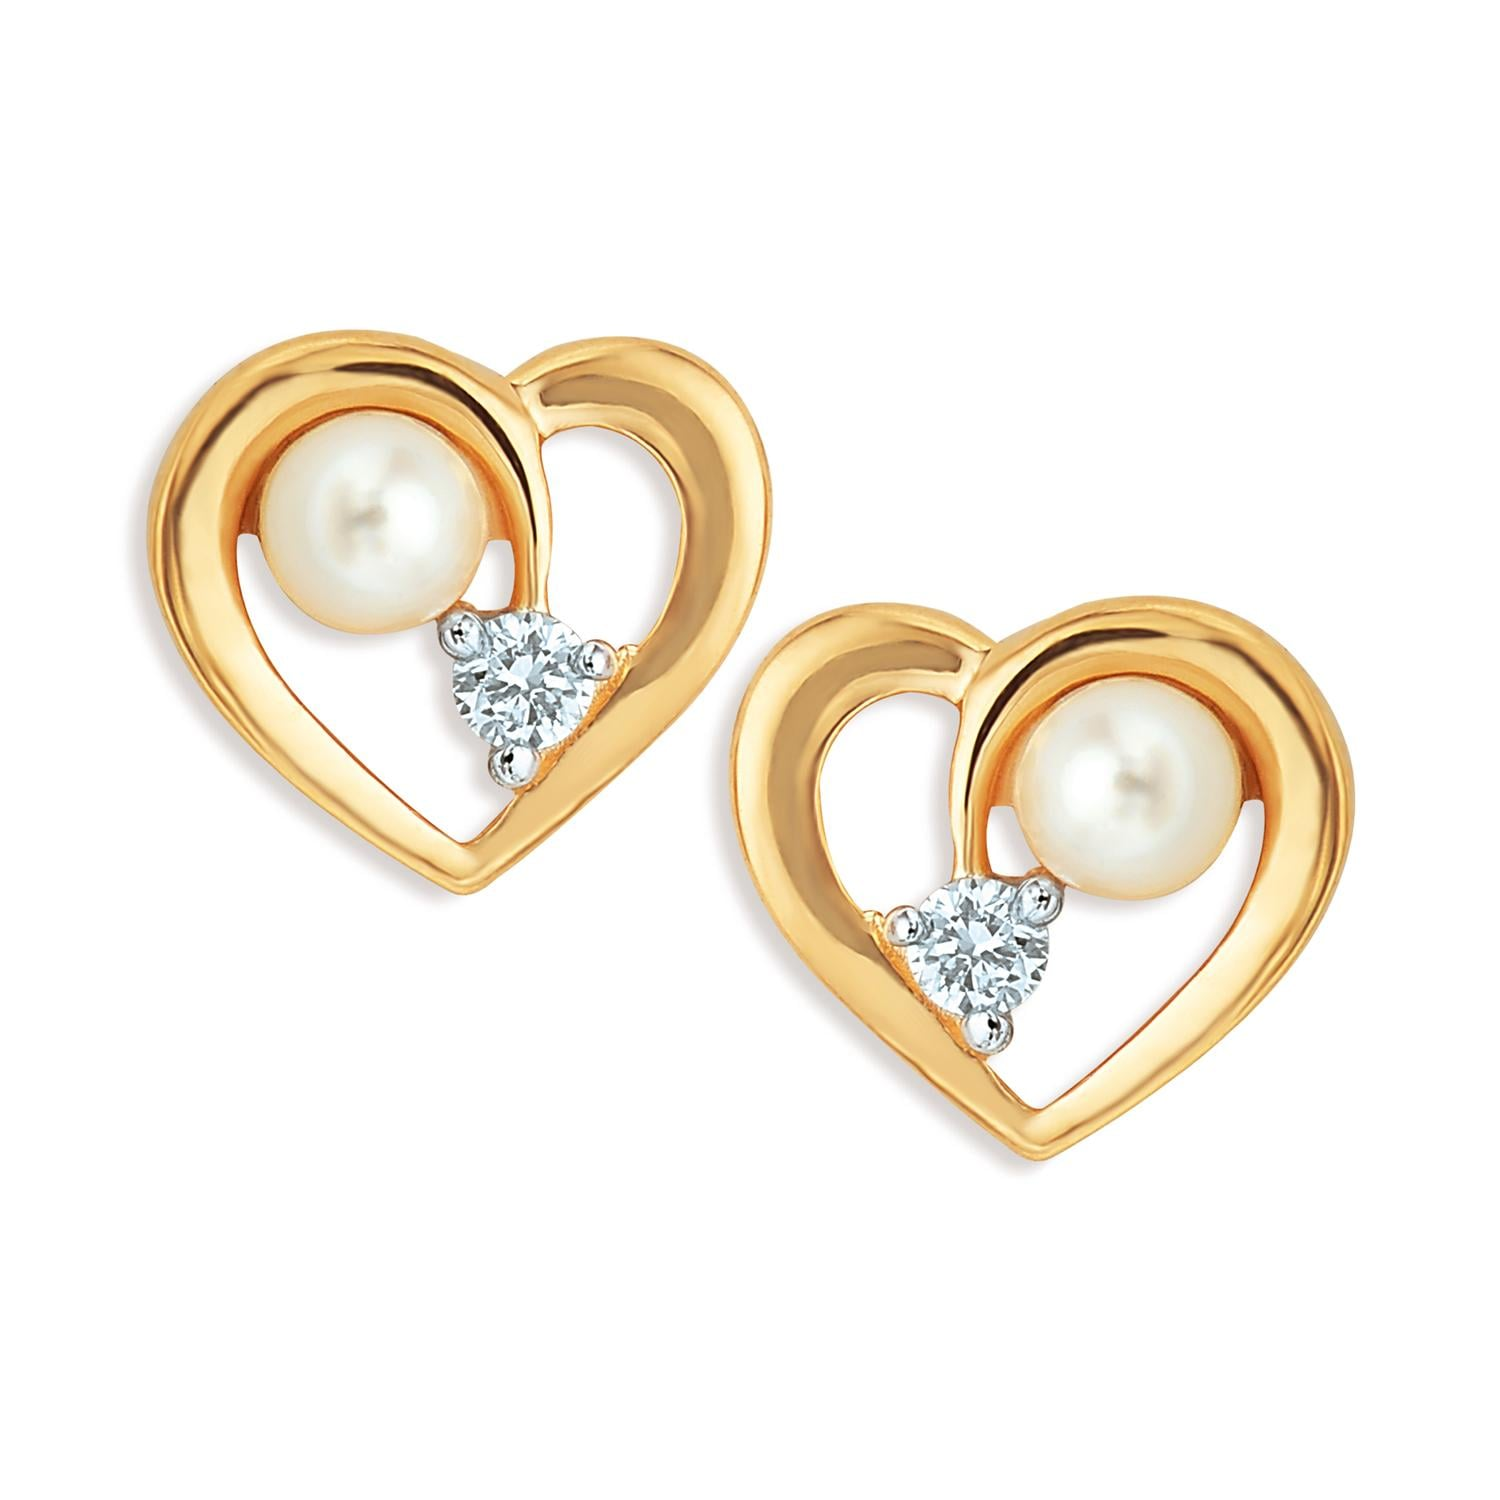 Buy Tanishq 18KT Yellow Gold Studded Stud Earring At Best Price